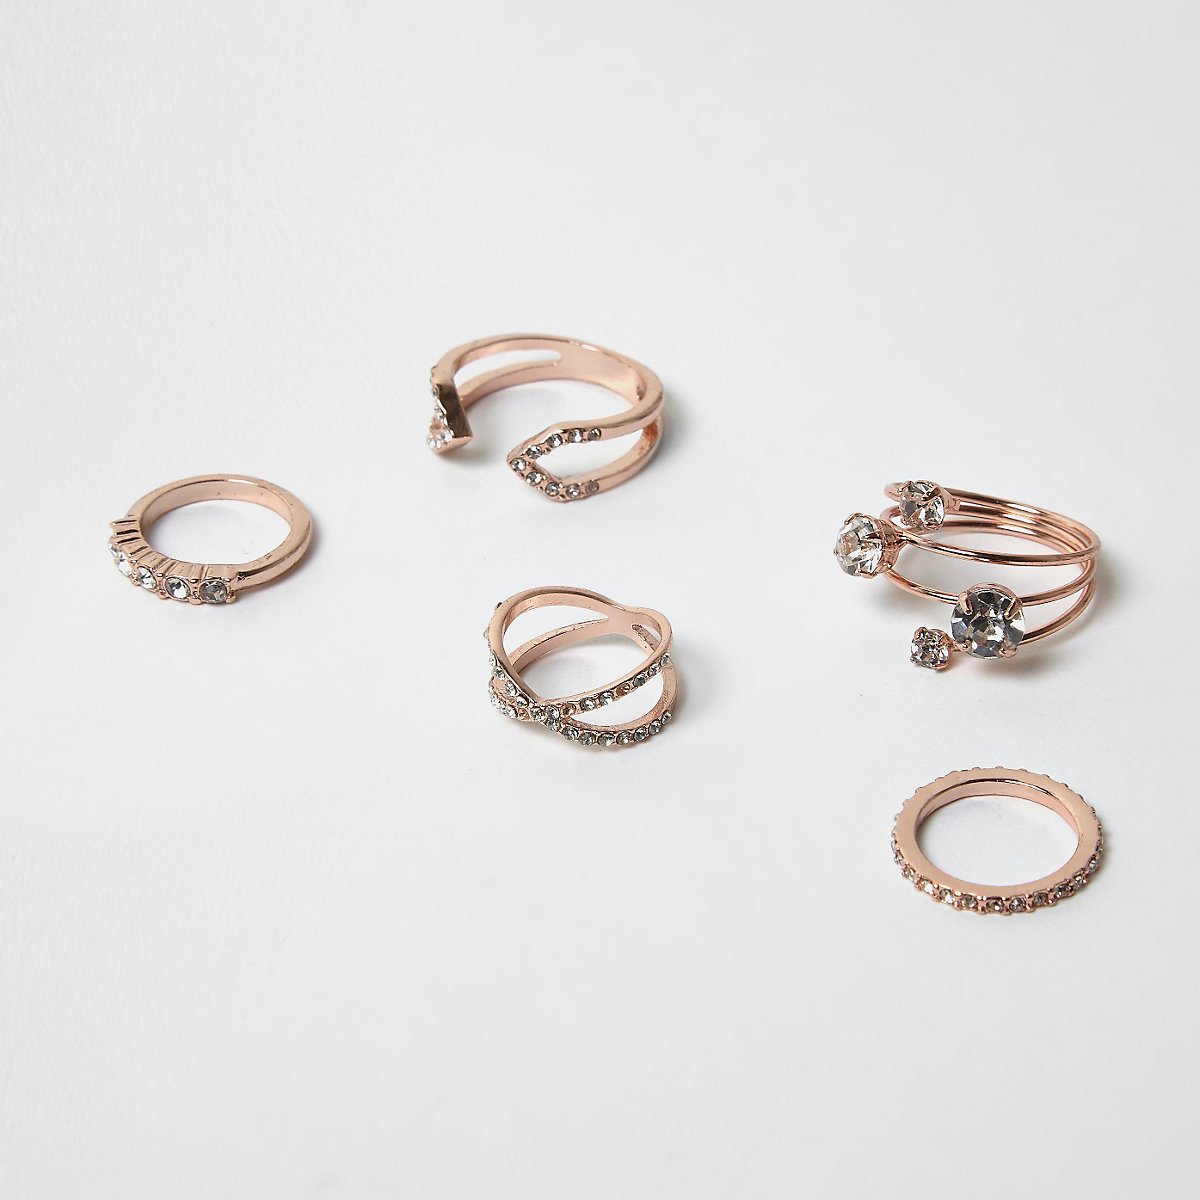 Rose gold tone rhinestone rings pack